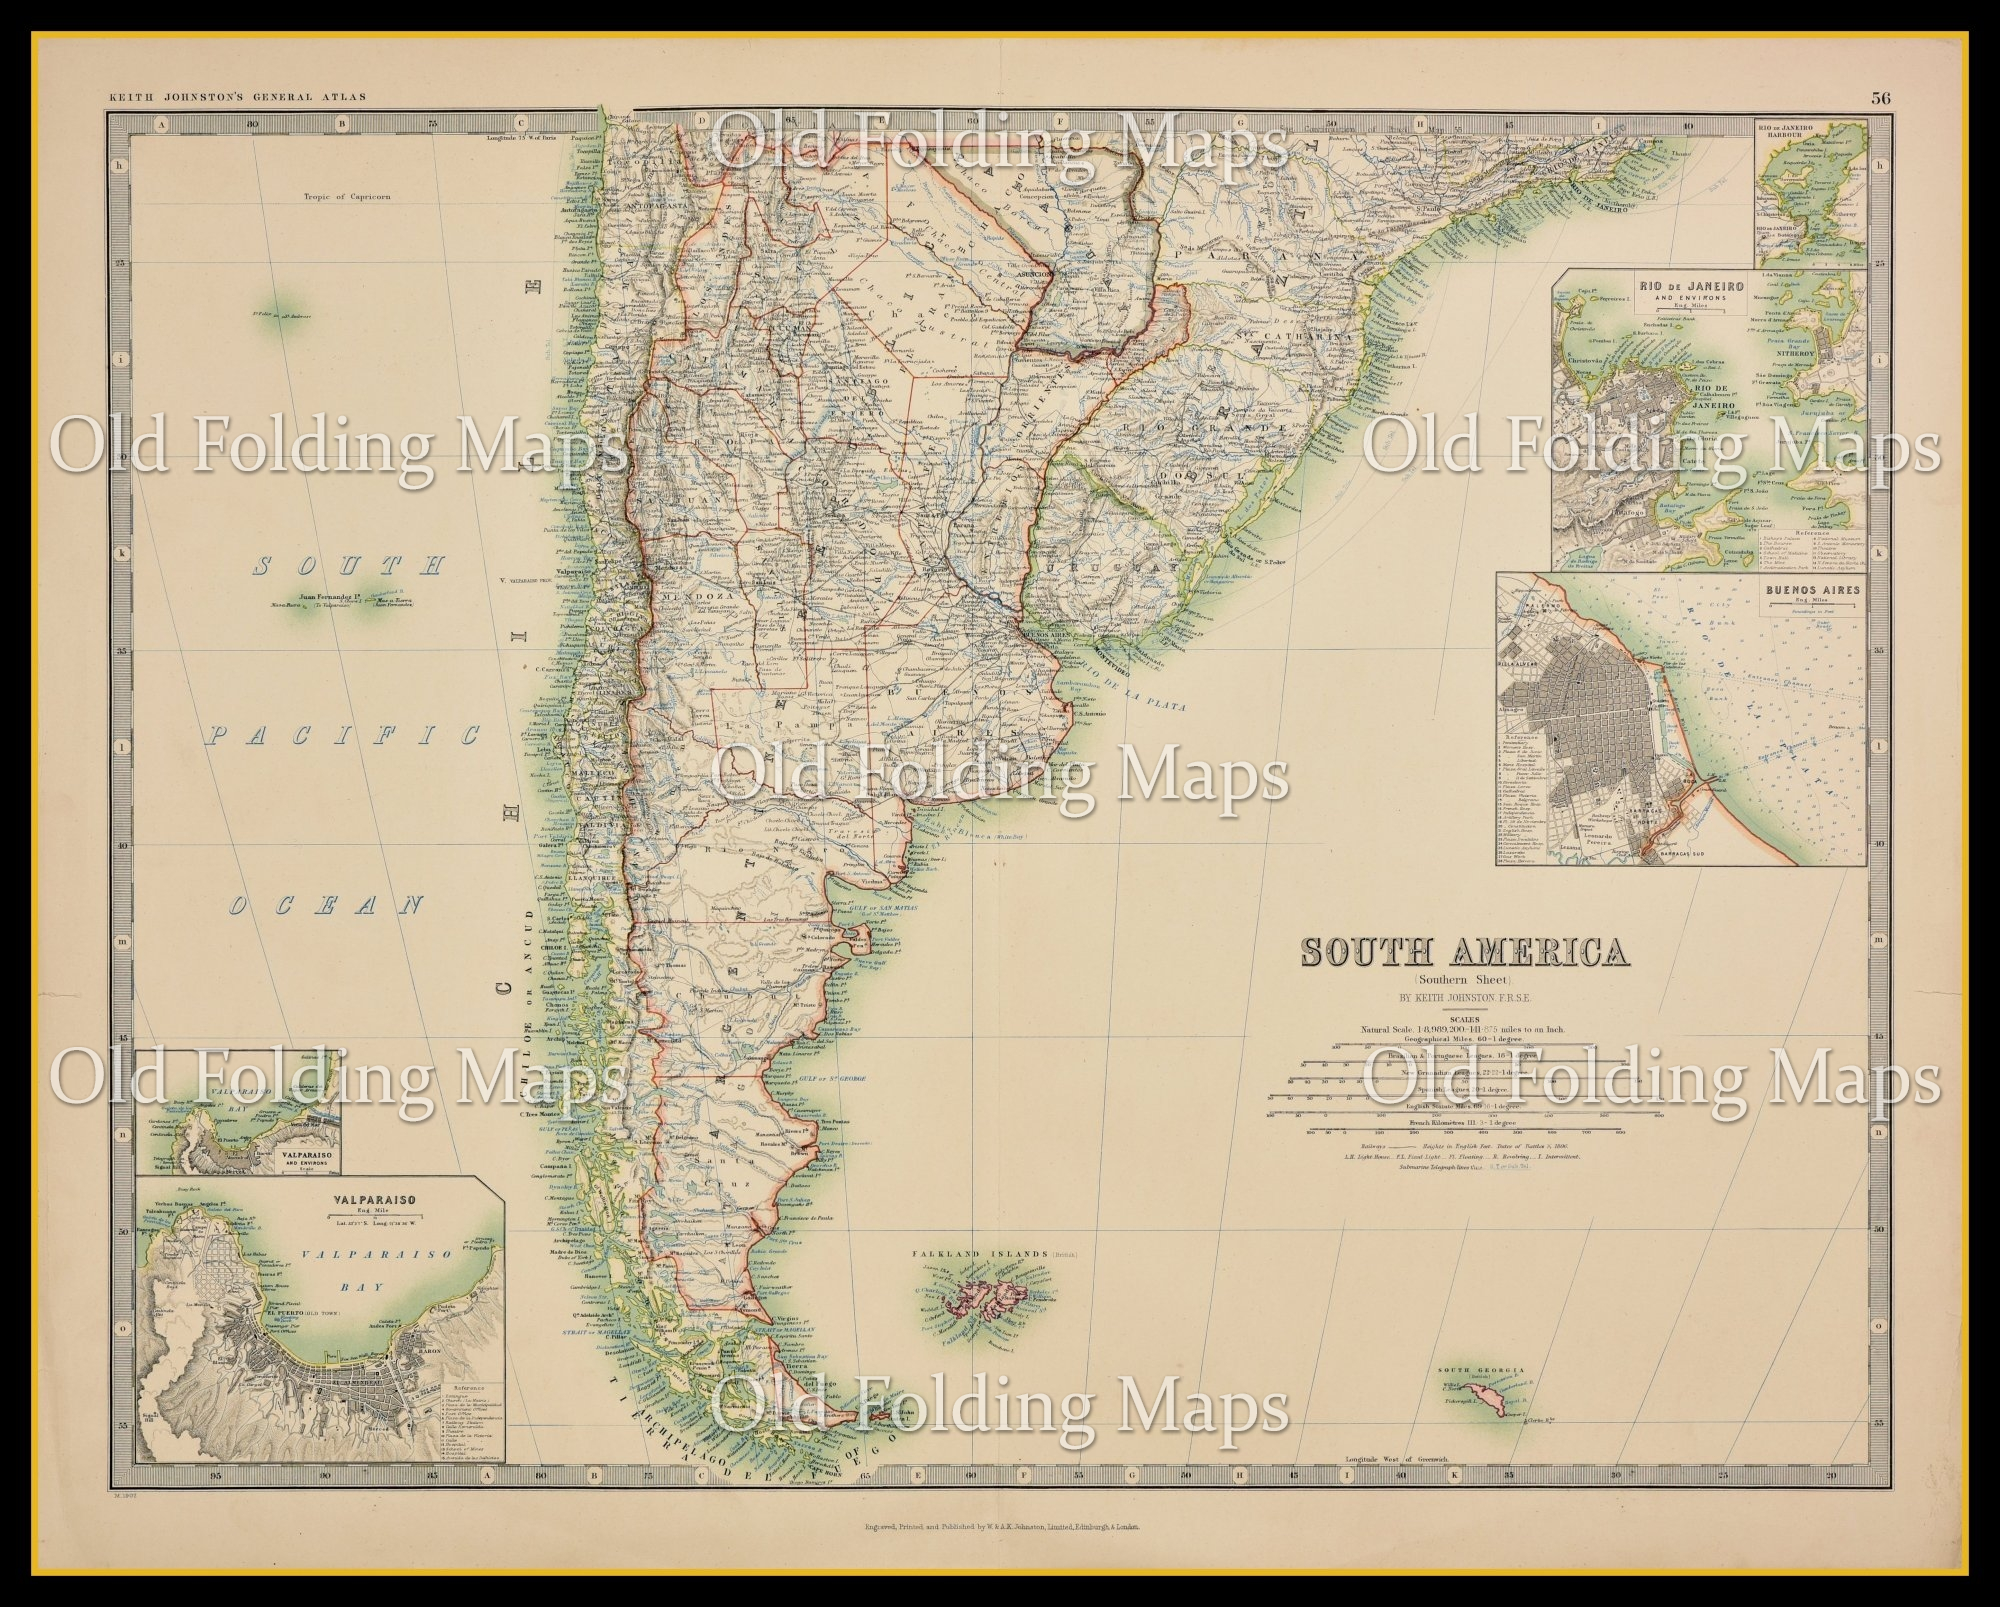 An Antique Map of South America South